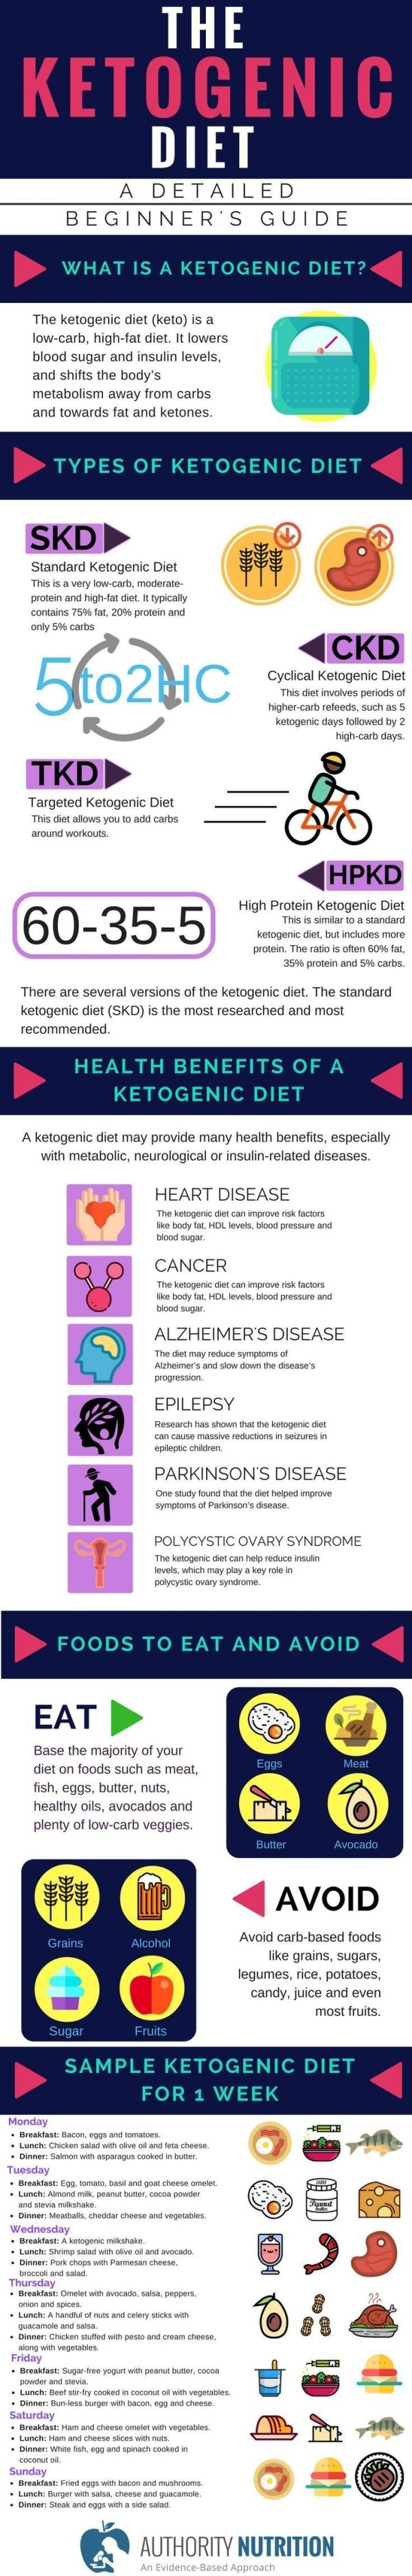 The ketogenic diet is a low-carb, high-fat diet that offers many health benefits. Over 20 studies show that this type of diet can help you lose weight and improve health. Ketogenic diets may even have benefits against diabetes, cancer, epilepsy and Alzheimer's disease. Learn more here: by milagros